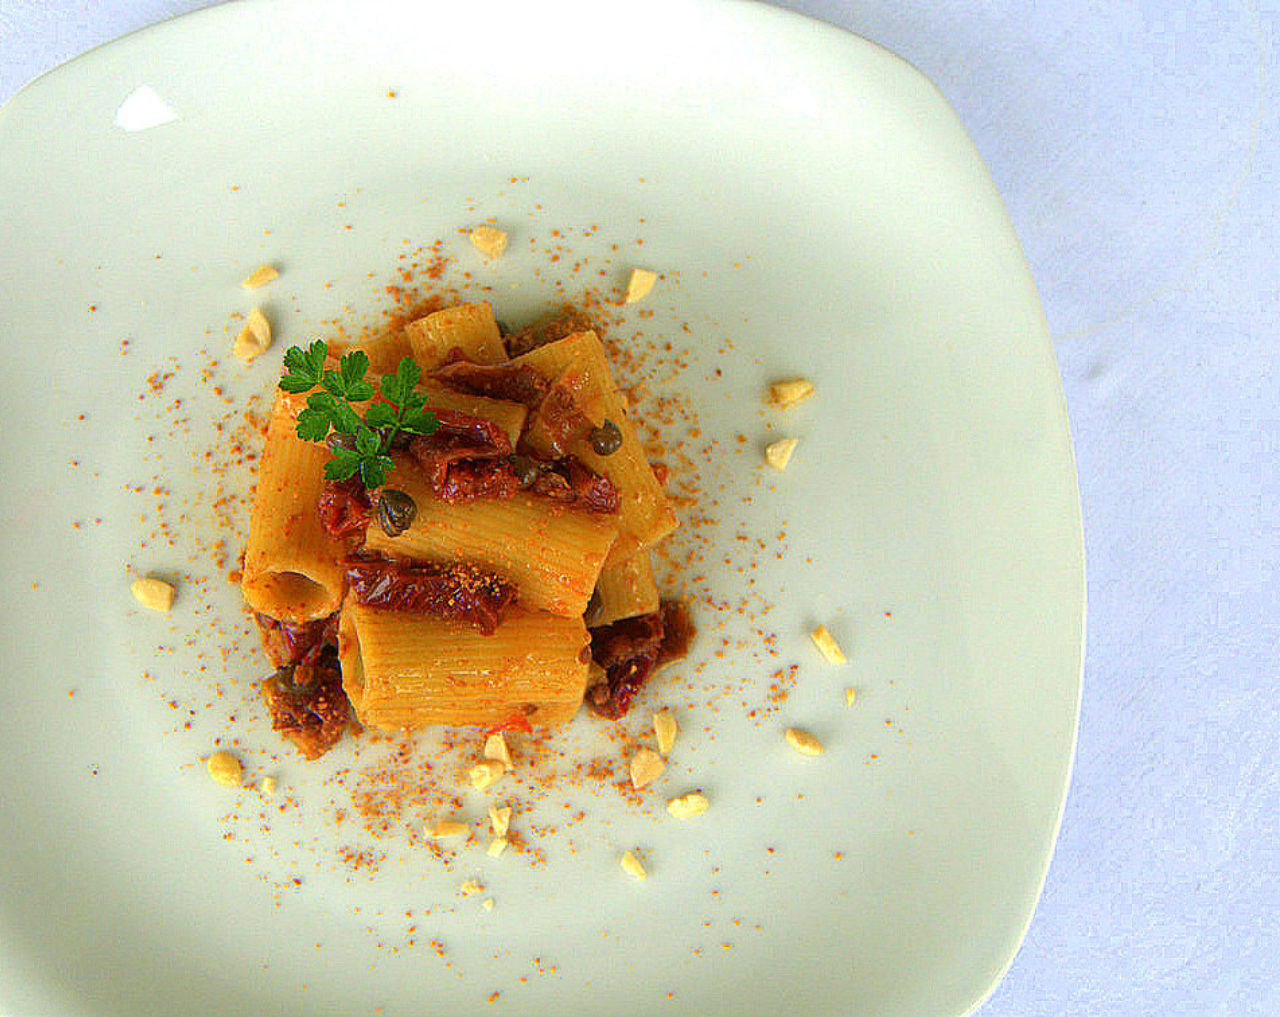 Rigatoni with sun-dried tomatoes, capers, olives and almonds